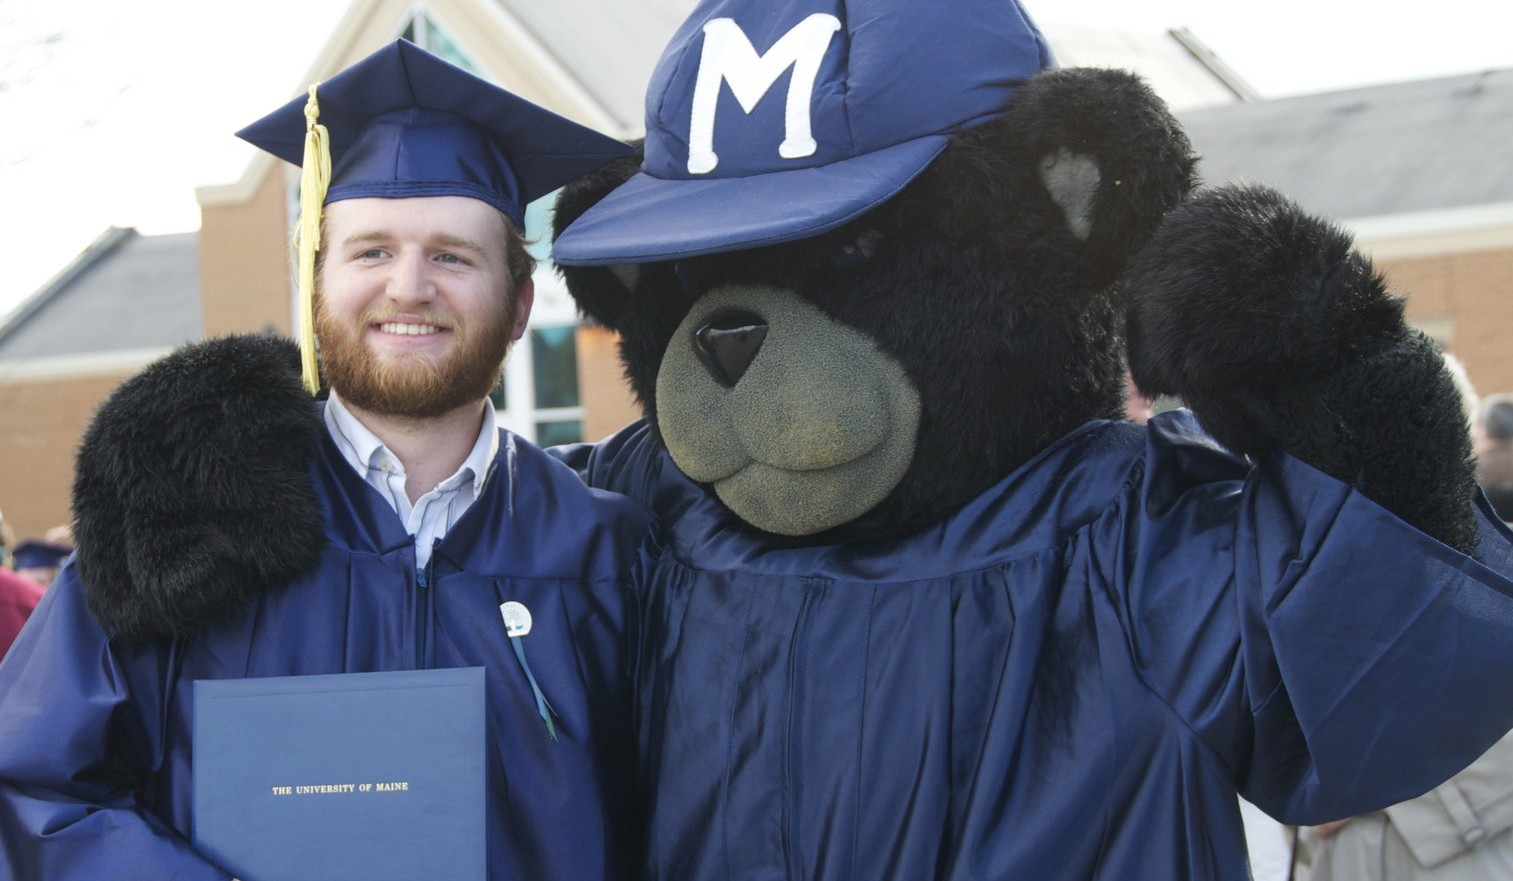 Bananas the Bear and graduate